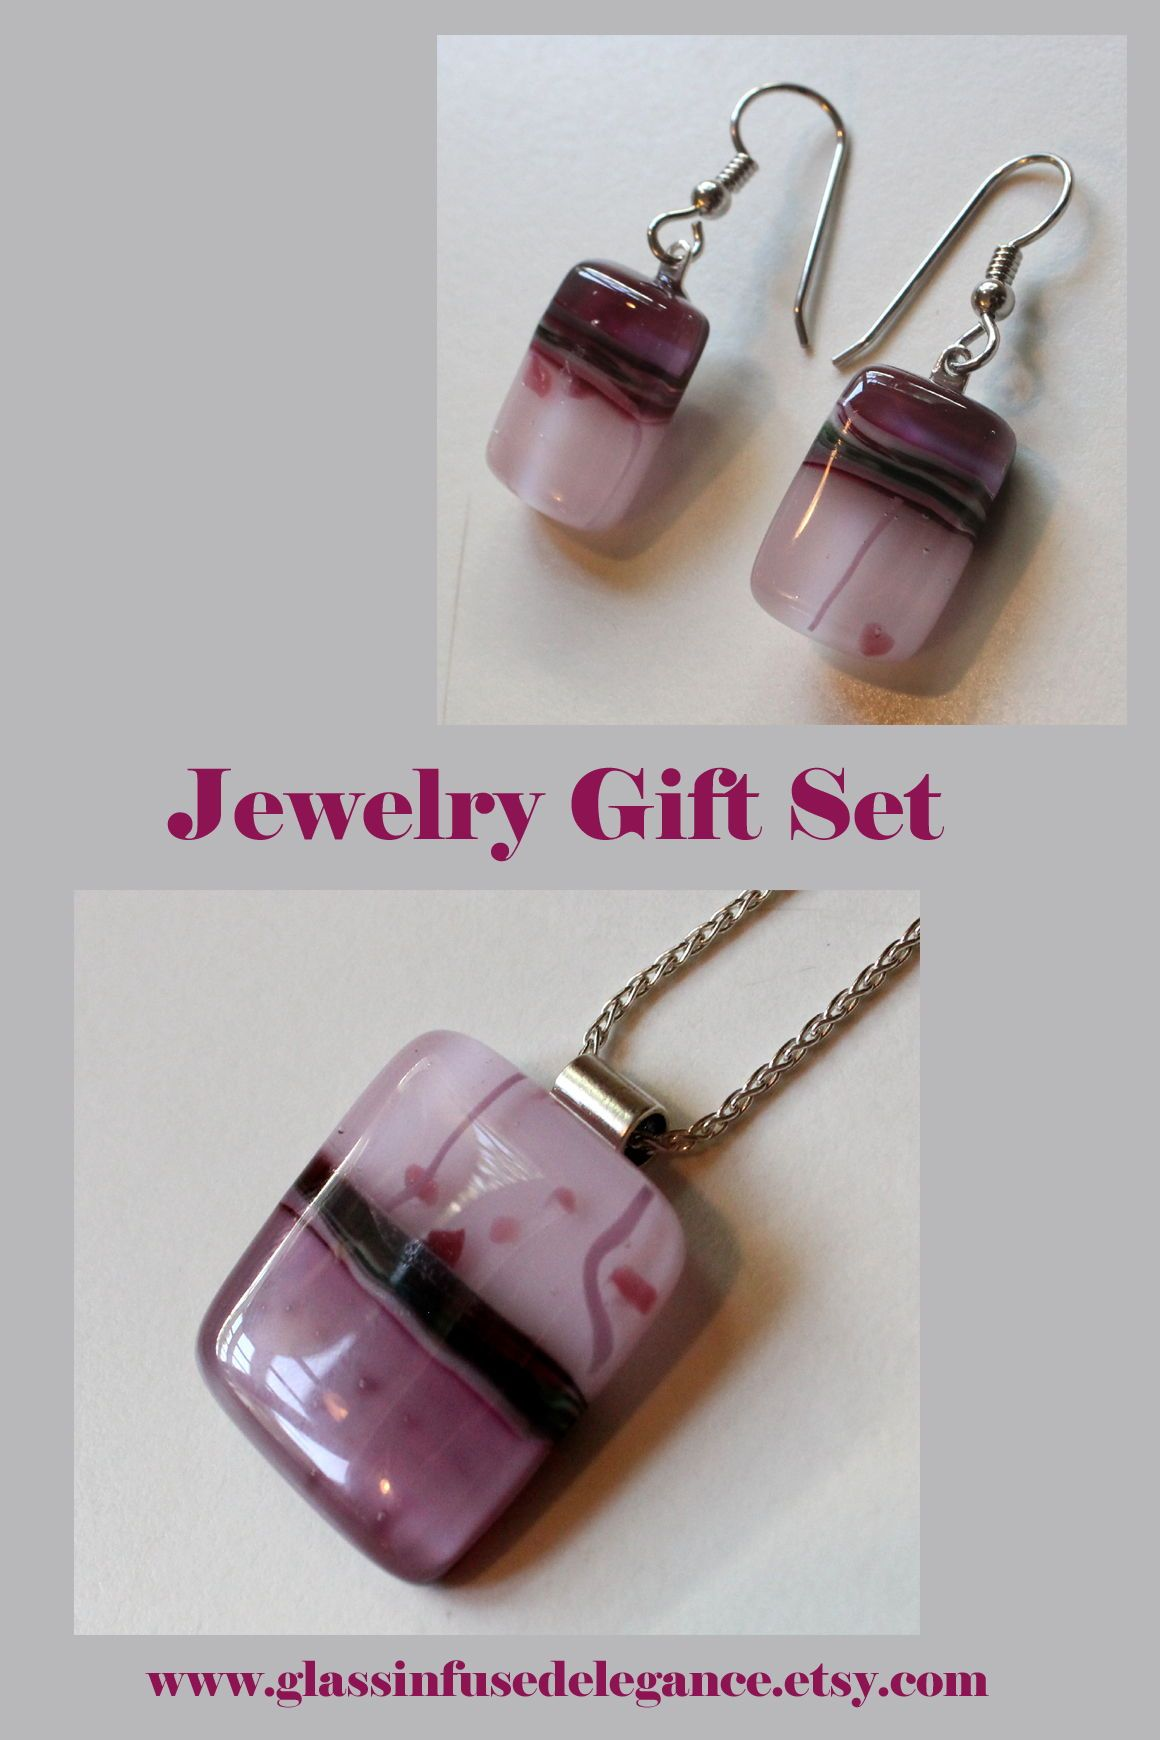 Modern gift set with pink fused glass pendant necklace and earrings